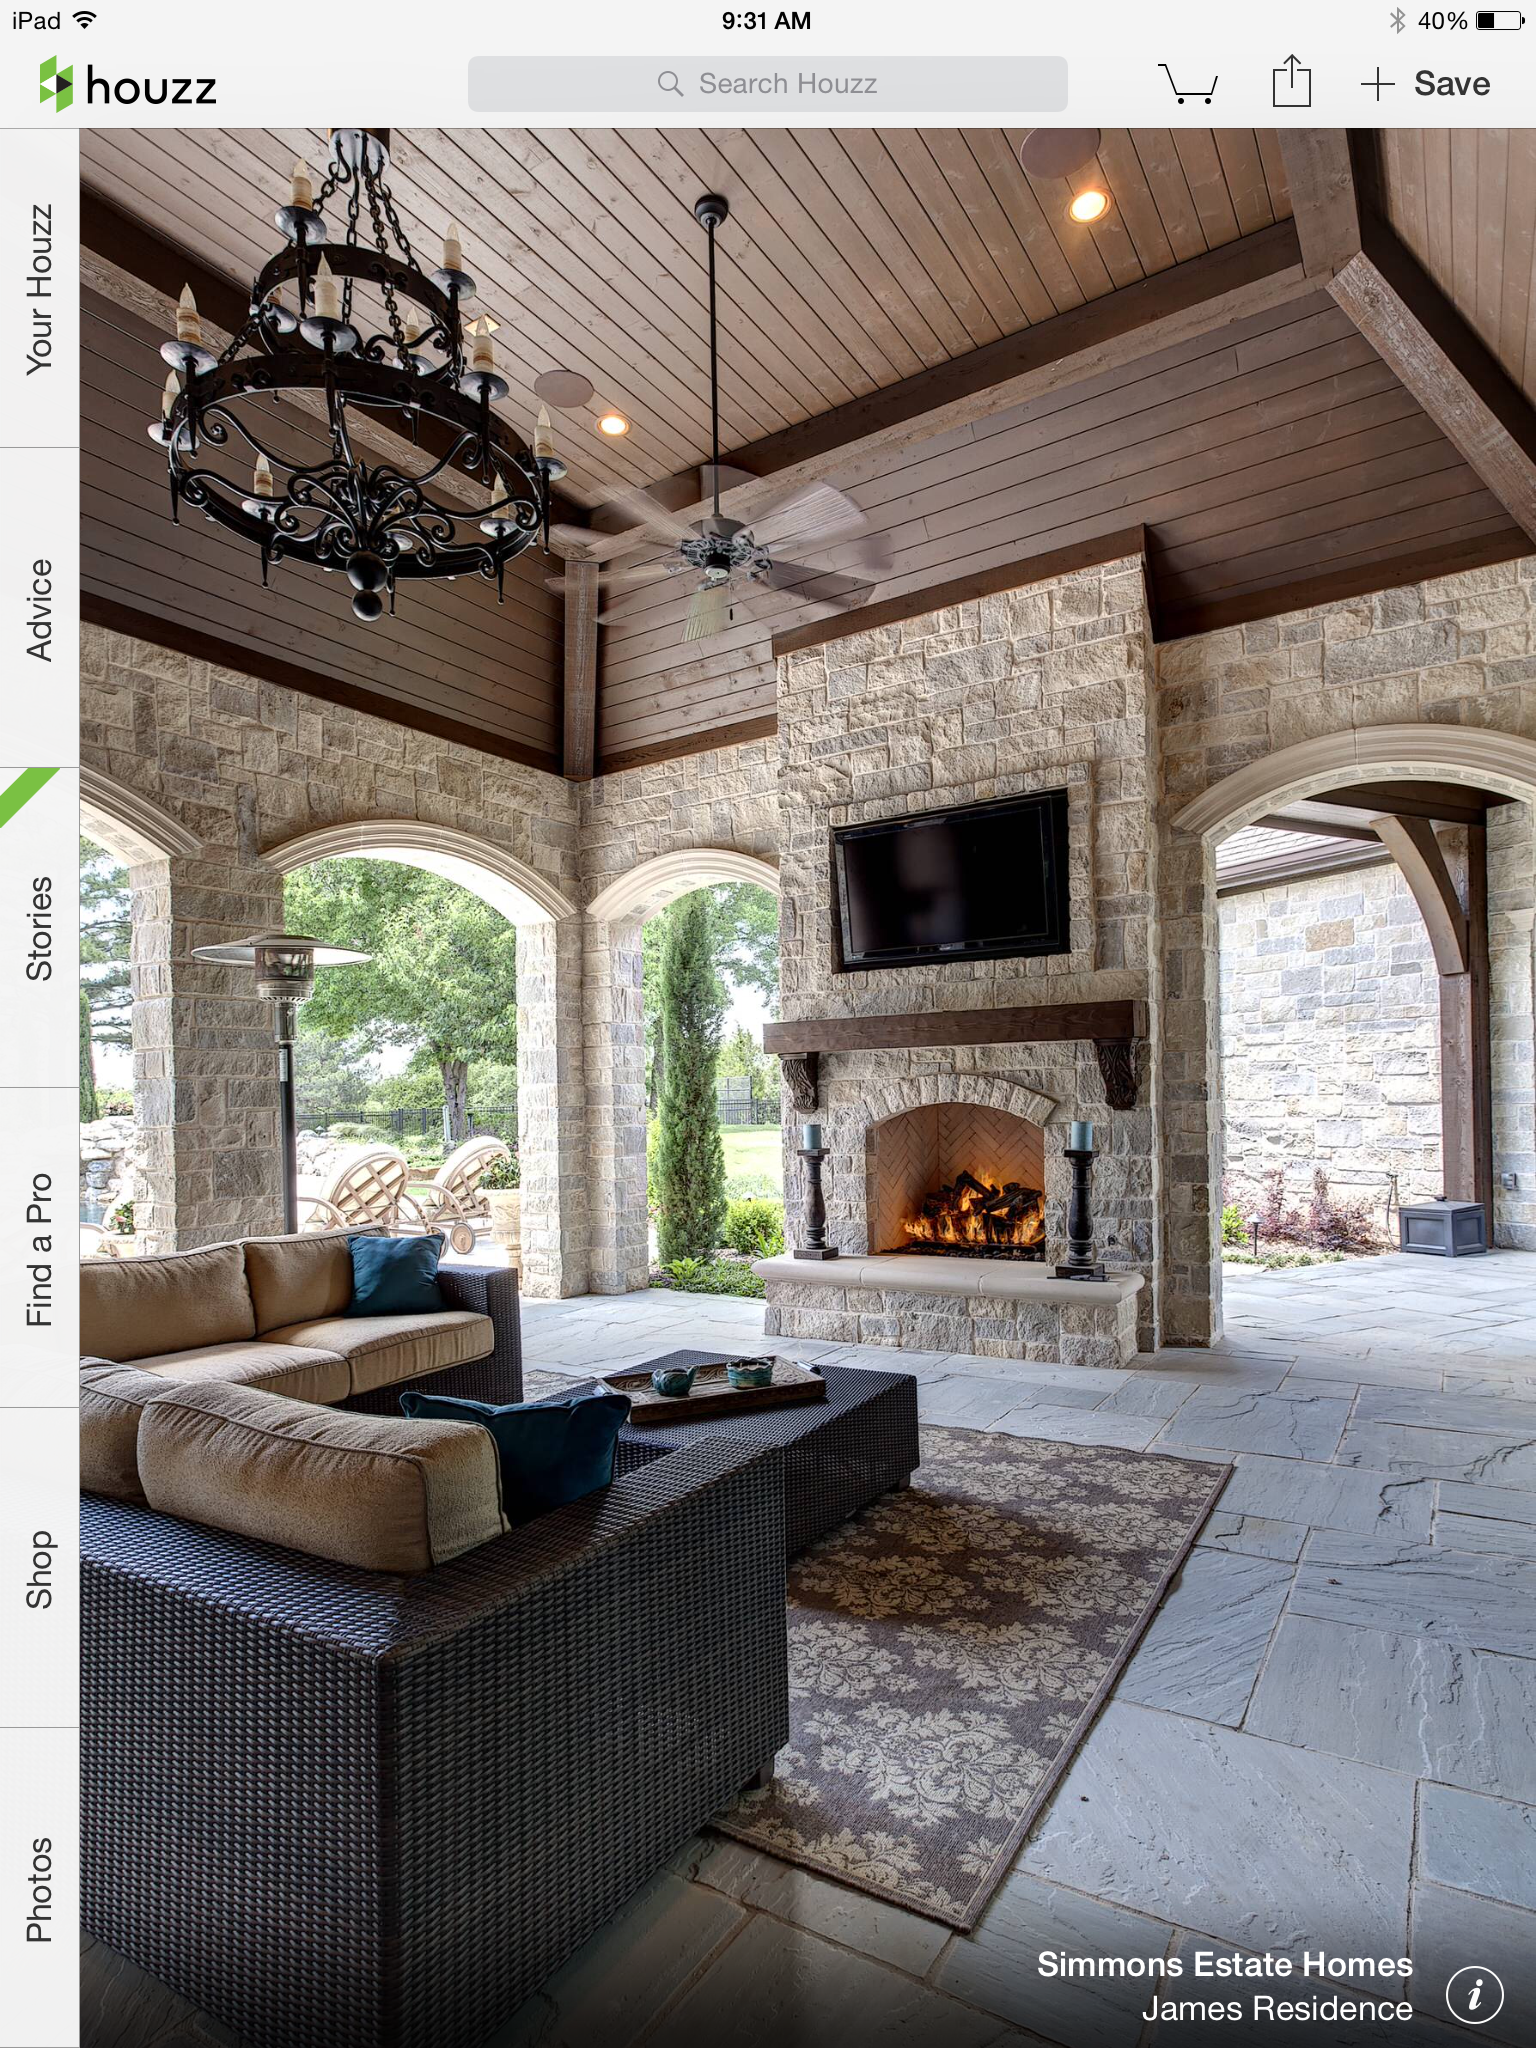 6a466d9be4567dee748ea5738fd698c2 Top Result 53 Inspirational Outside Stone Fireplace